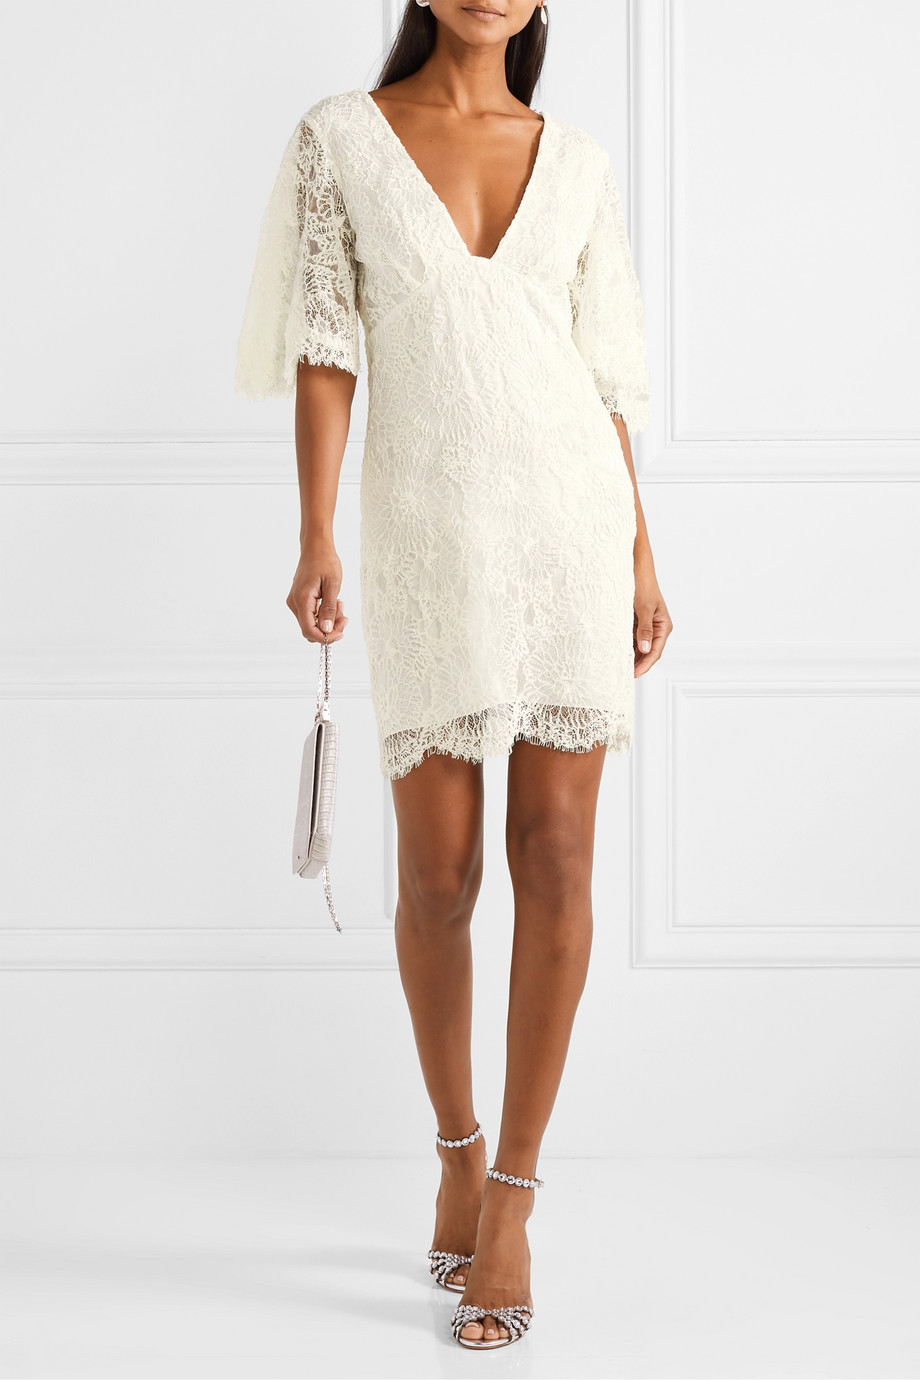 Les Rêveries Open-back corded lace mini dress